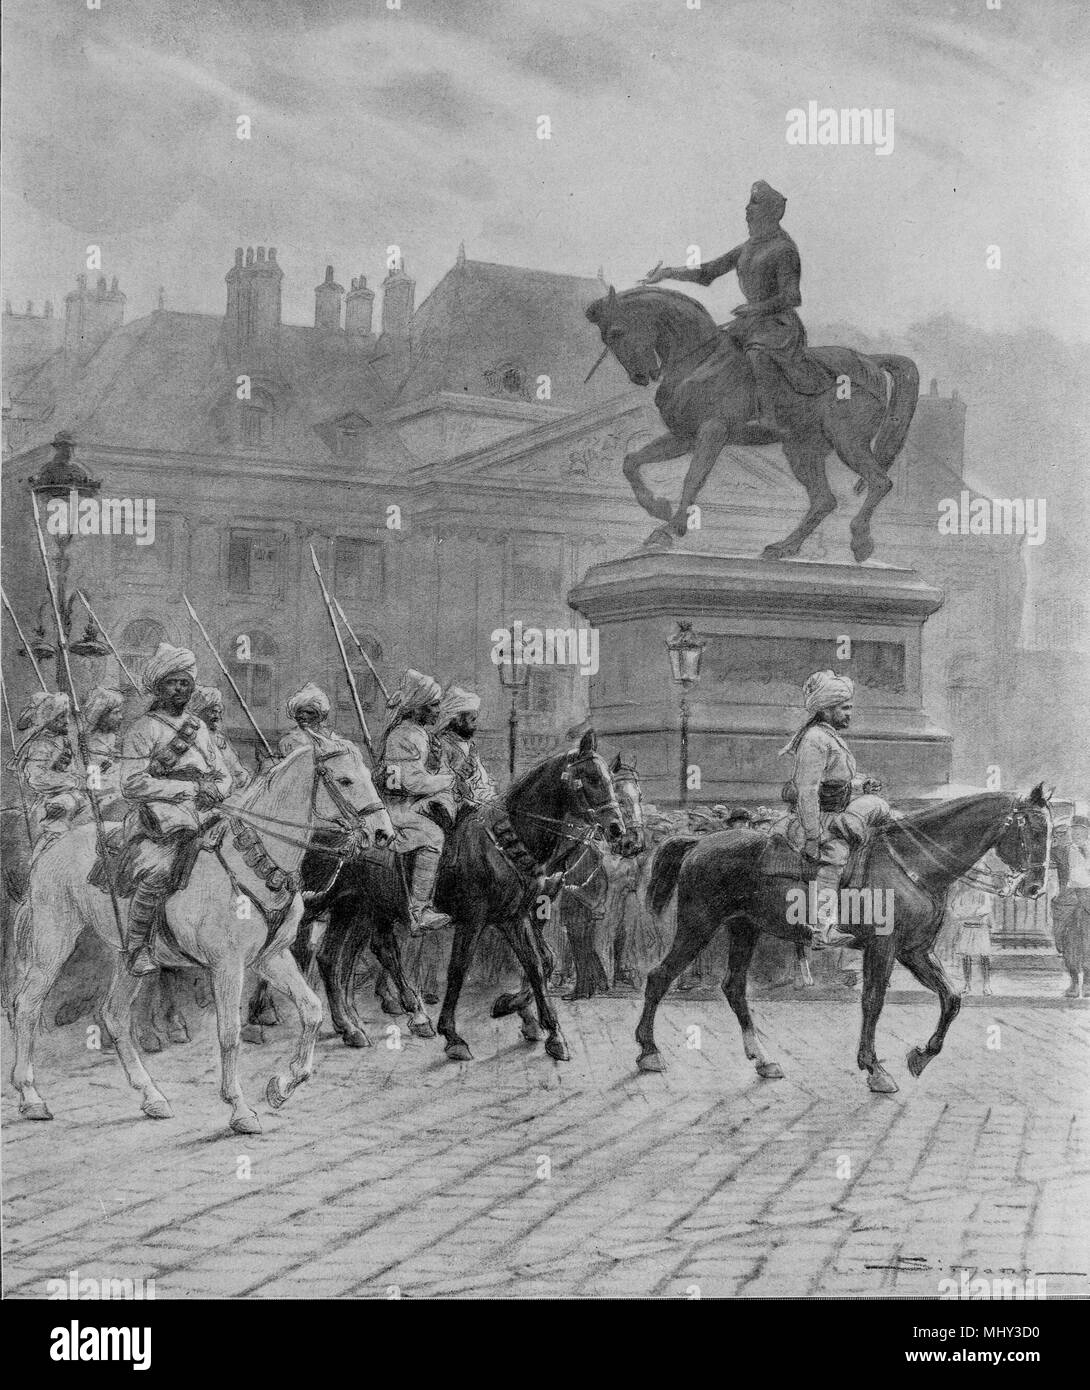 Bengal lancers parading in front of Jeanne d'Arc statue in Orleans, First World War, France - Stock Image